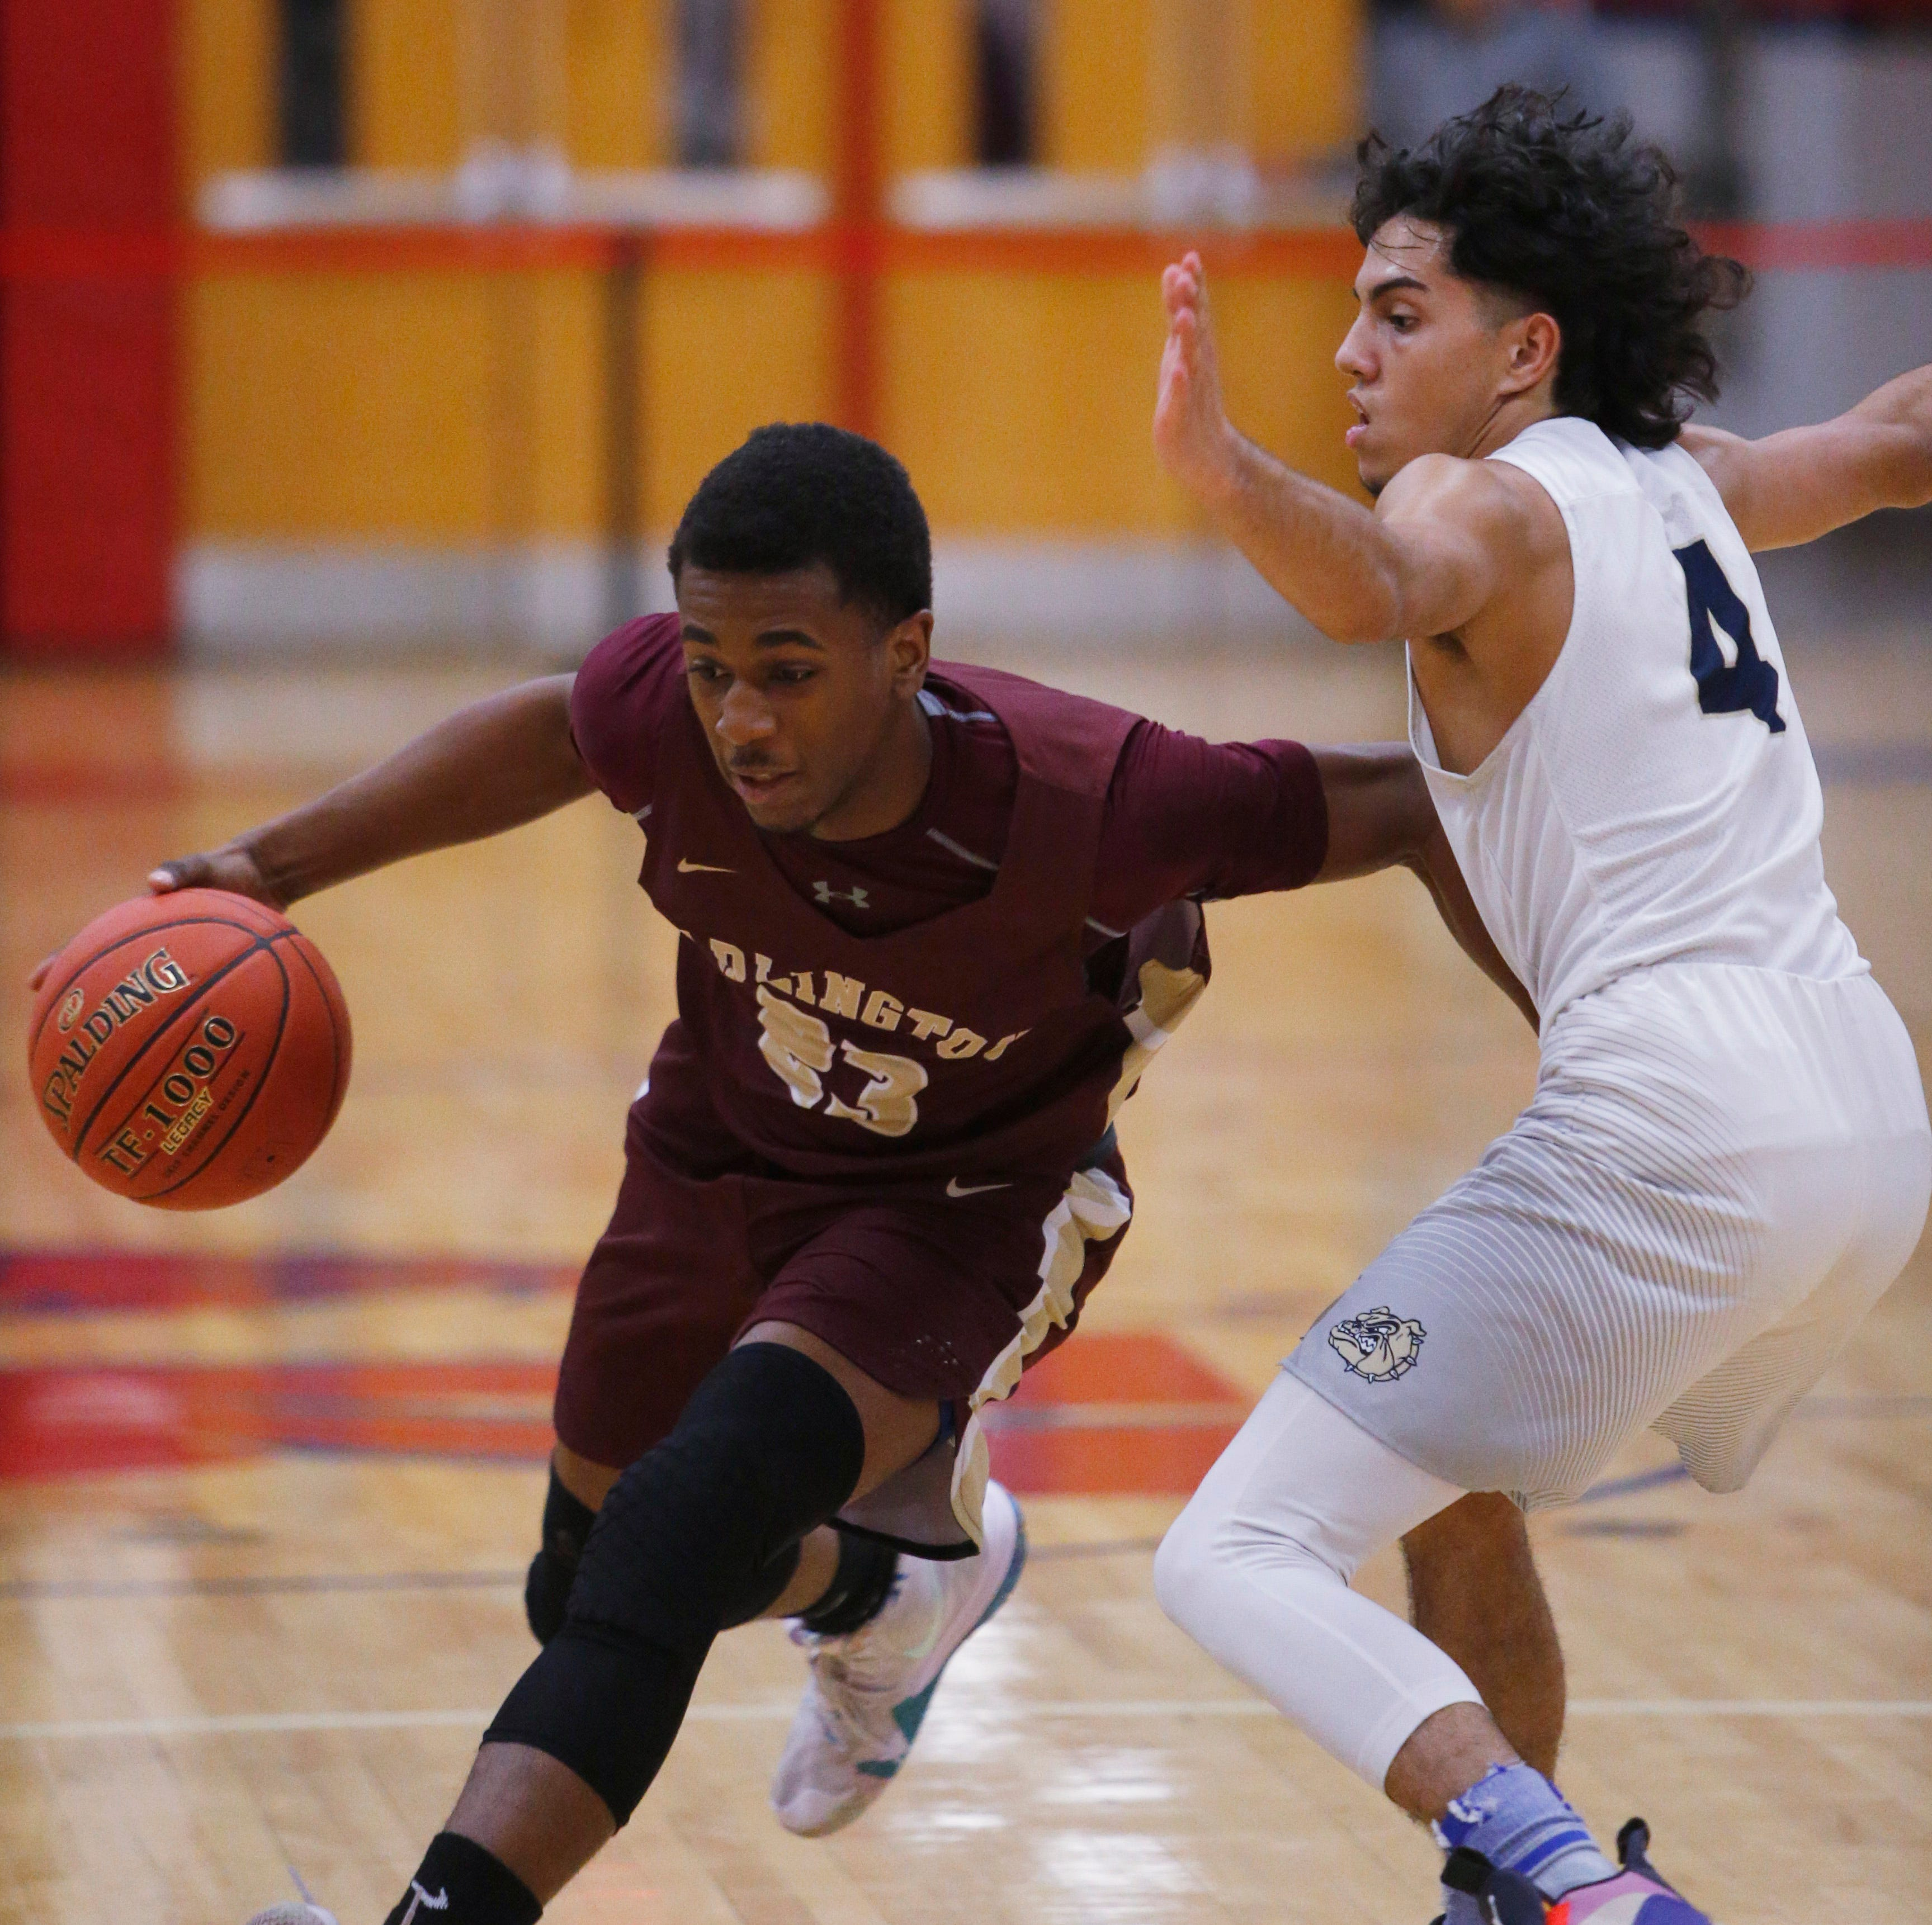 Arlington basketball doubles up on league titles as playoffs loom